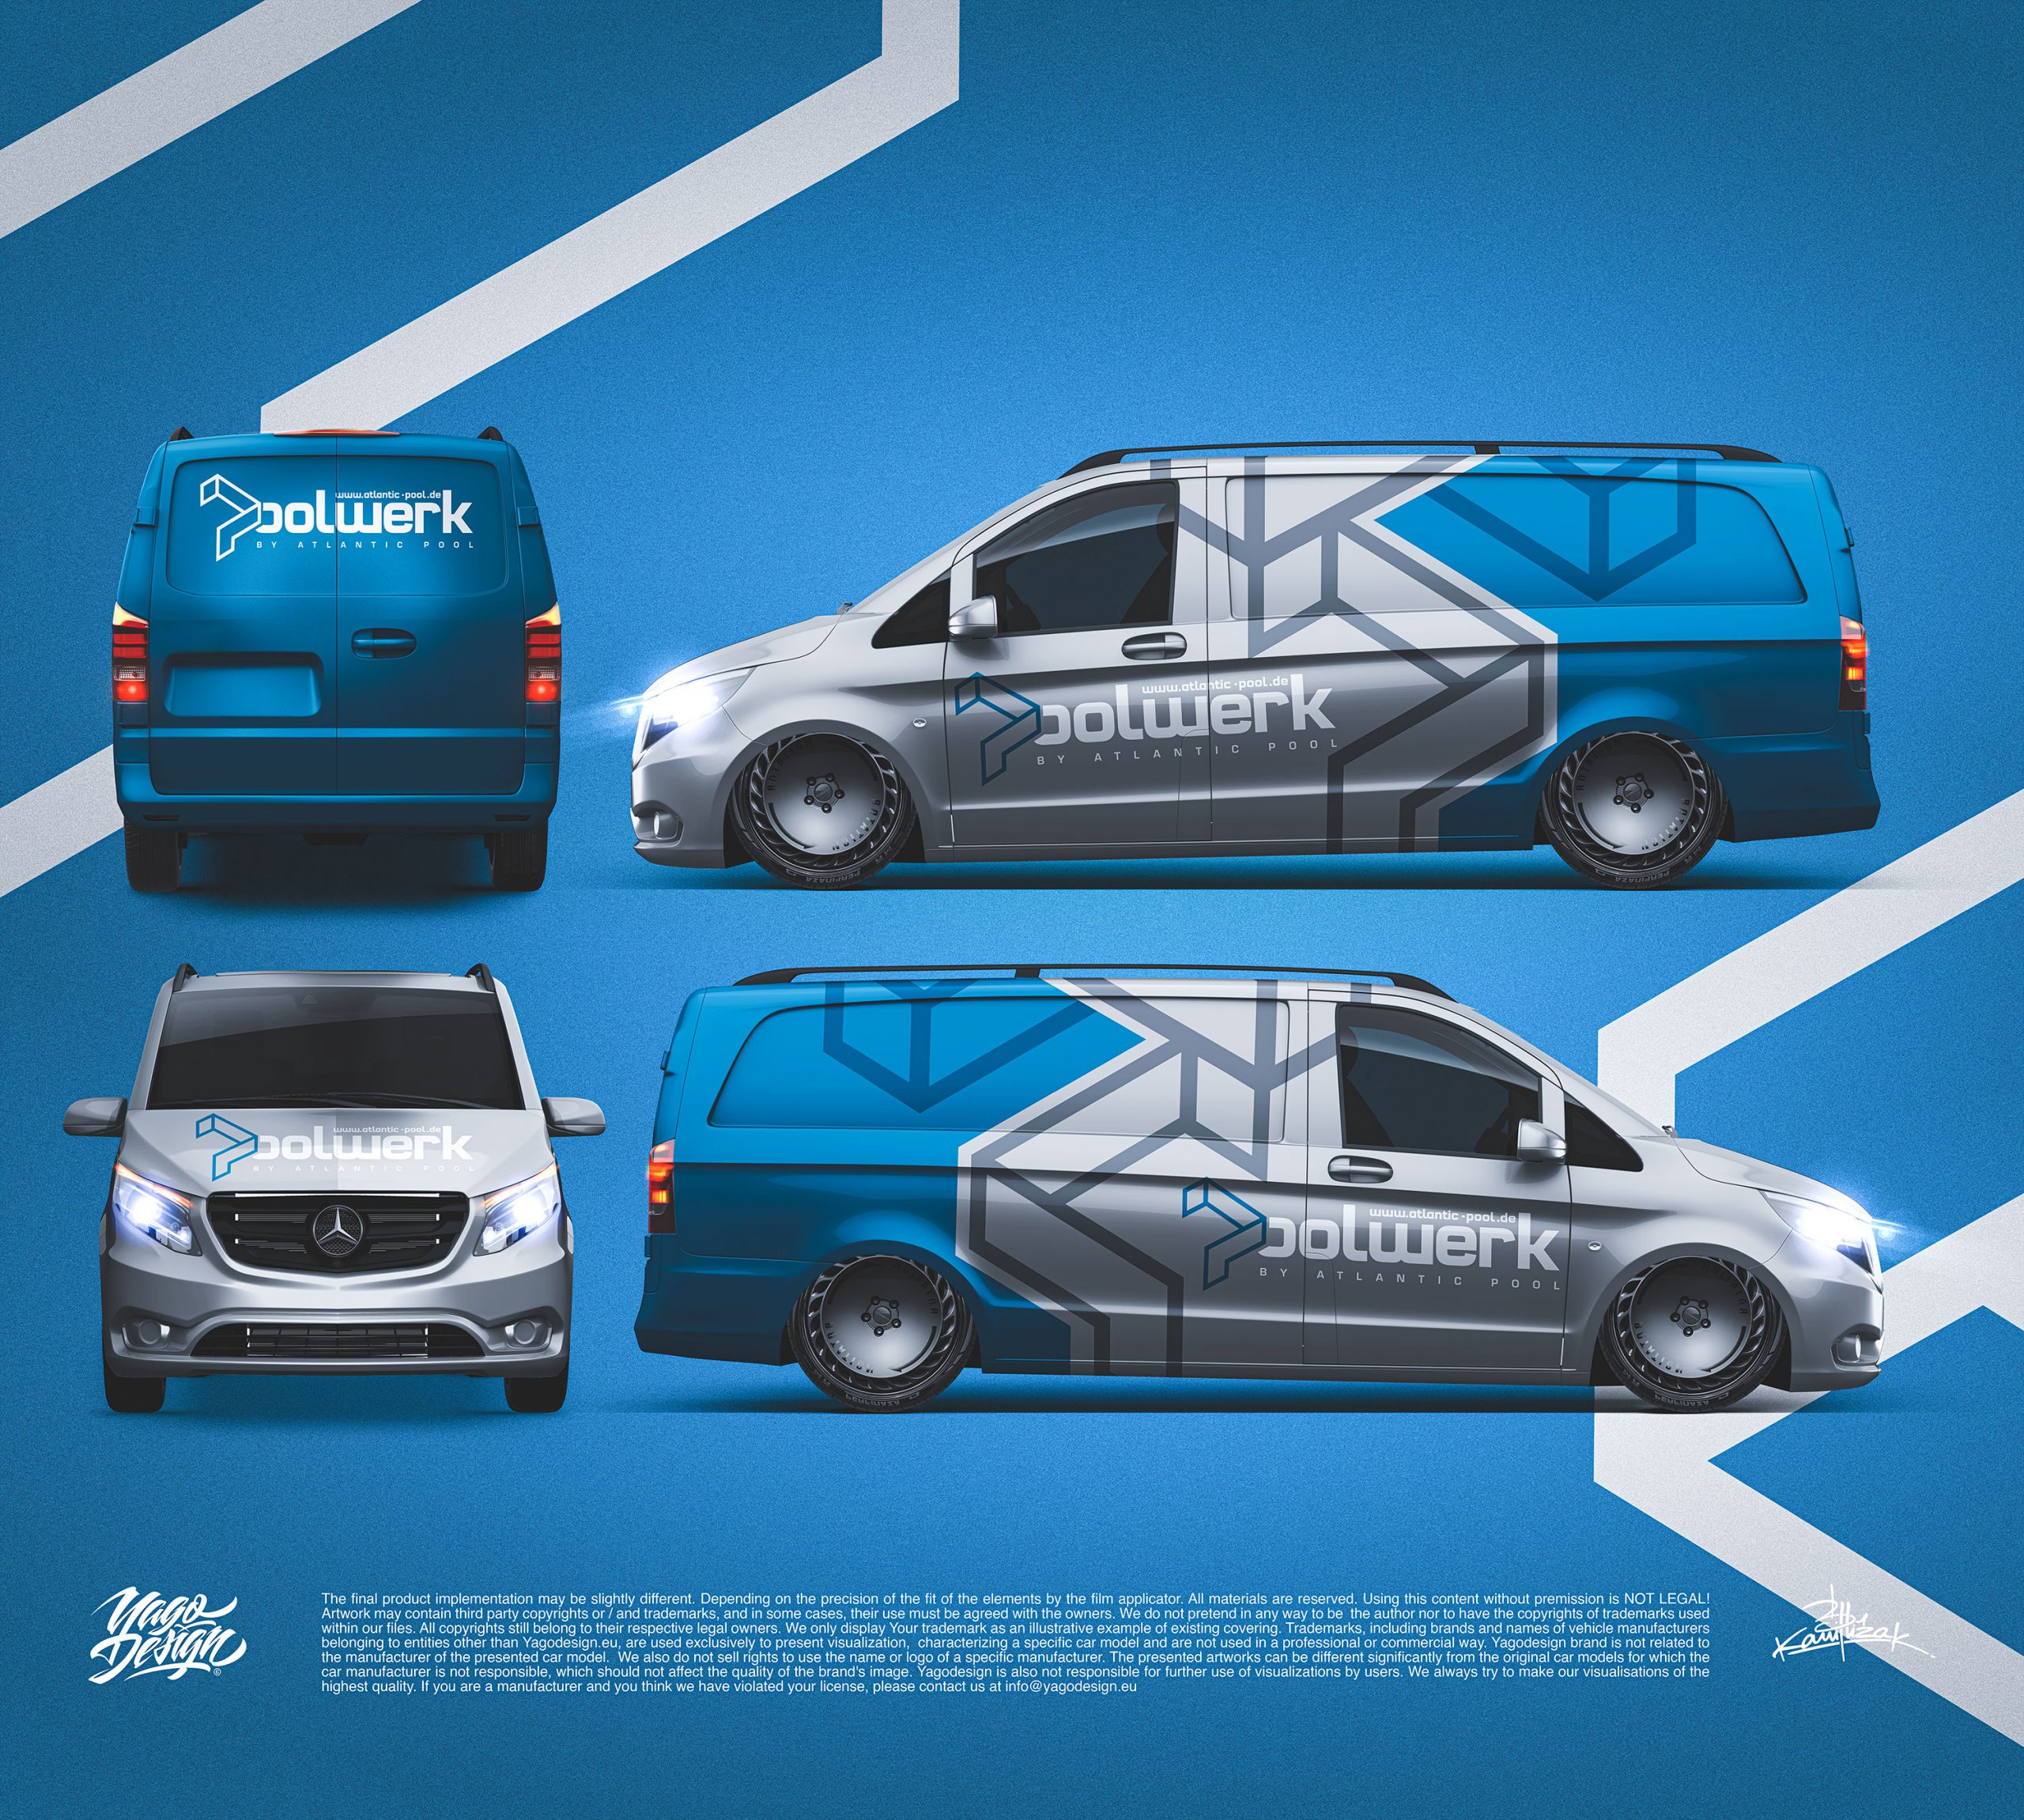 Mercedes-Benz-Vito-by-Yagodesign-Automotive-Design-Studio-all-sides-scaled